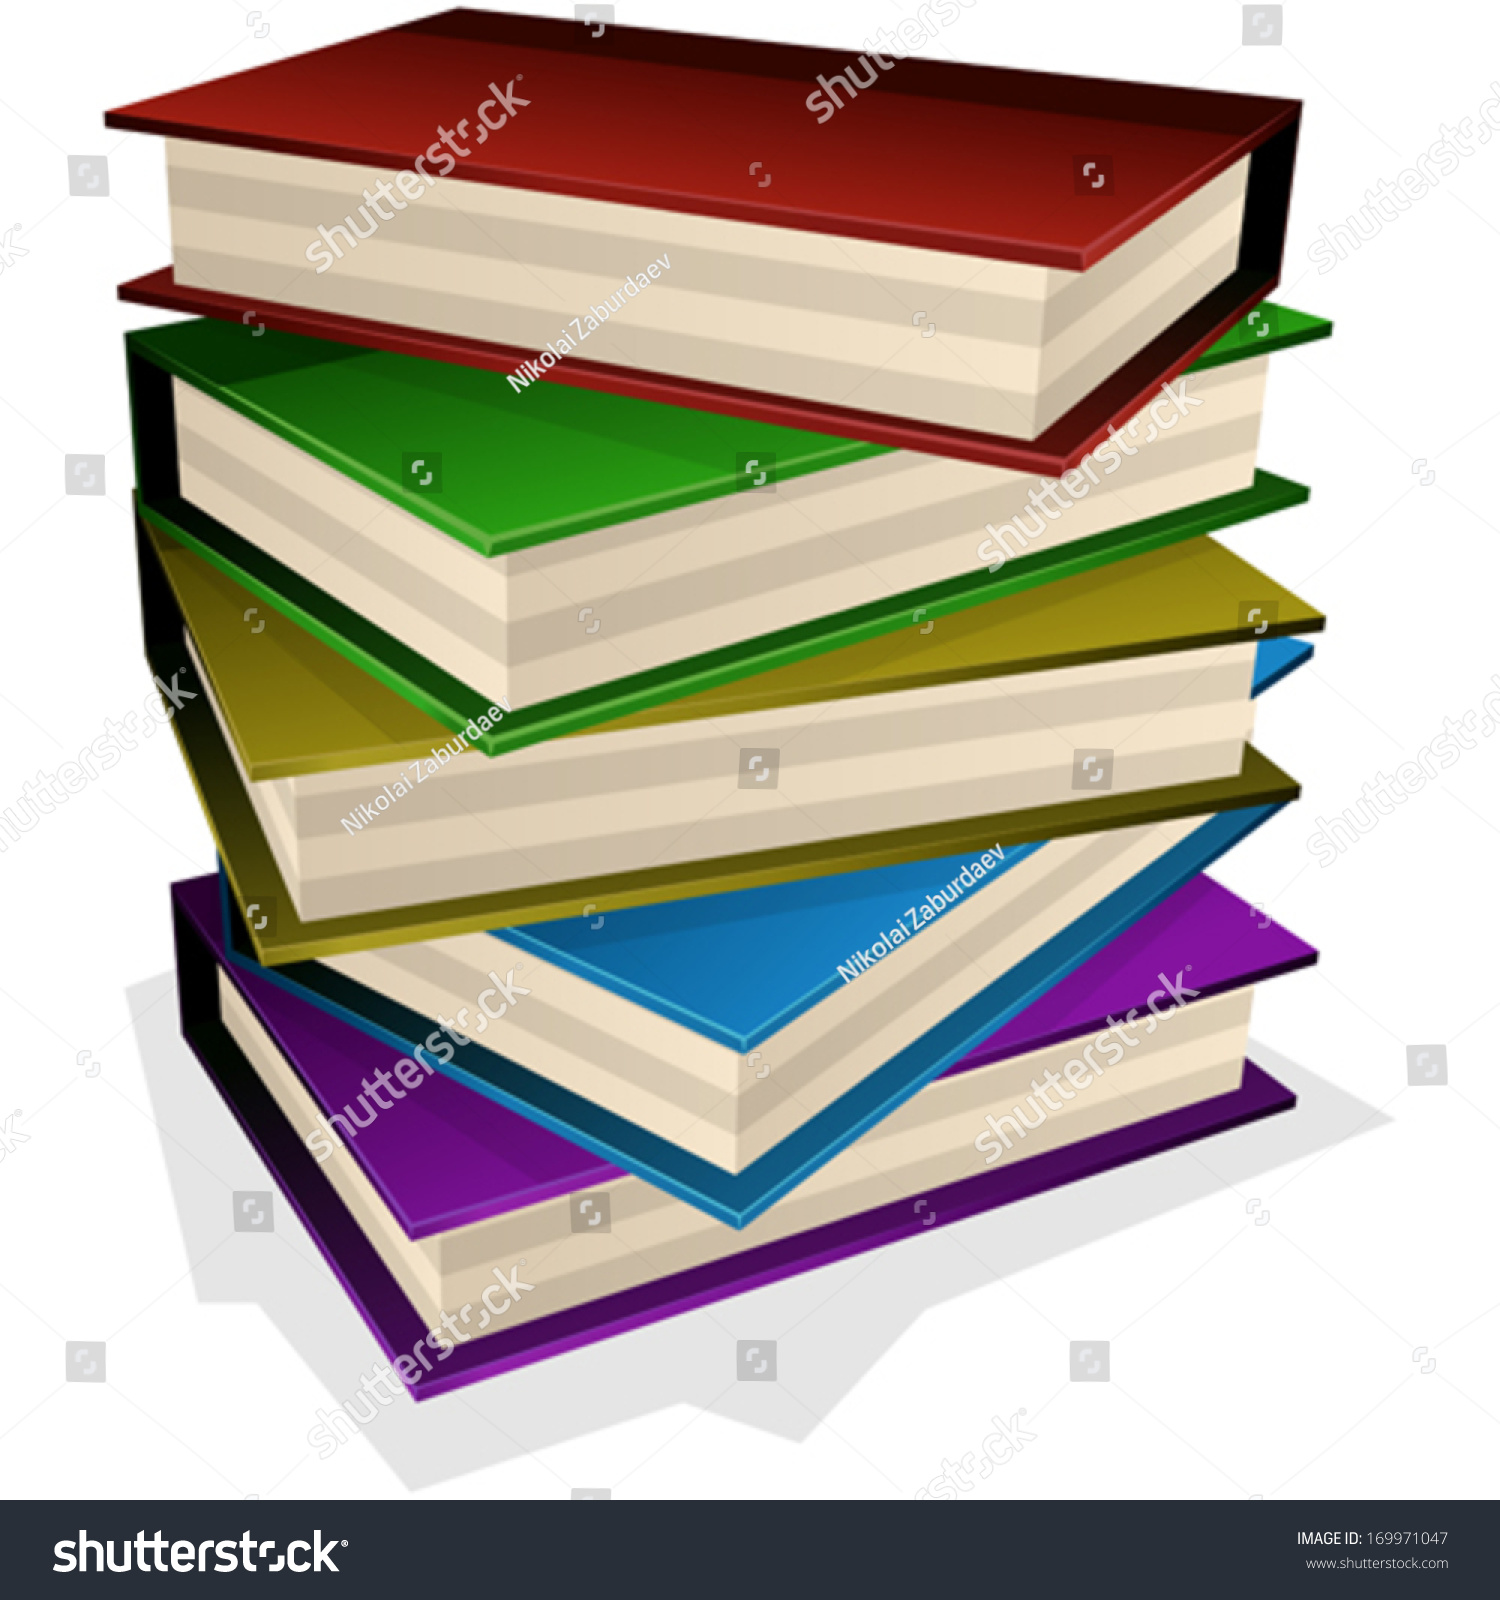 Vector Illustration Pile Books Isolated On Stock Vector 169971047 ...